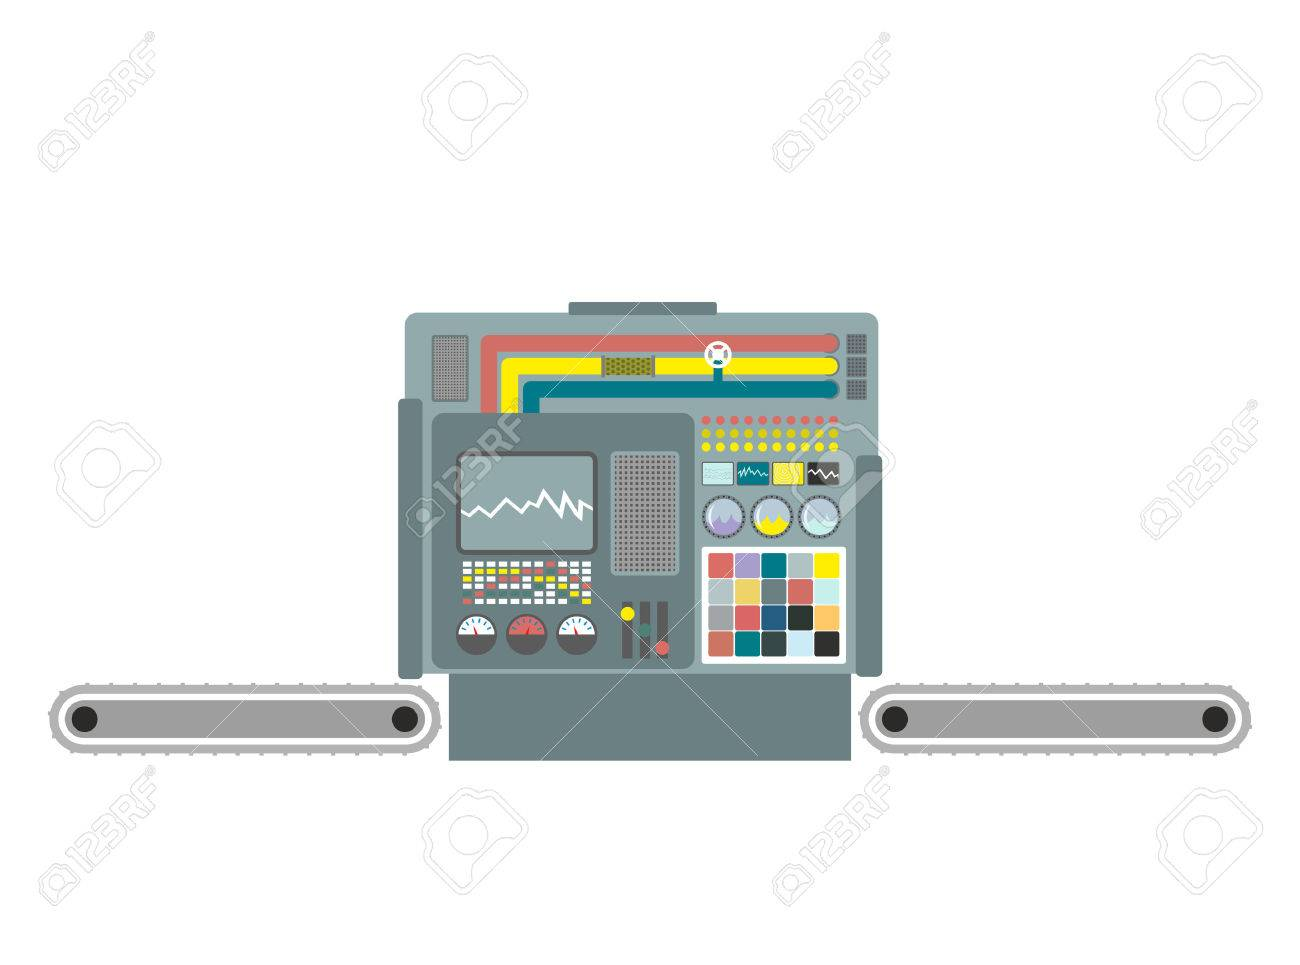 Industrial machine. Construction equipment factory. Panel production control system. Industrial group. Buttons and screens and sensors. - 66680628